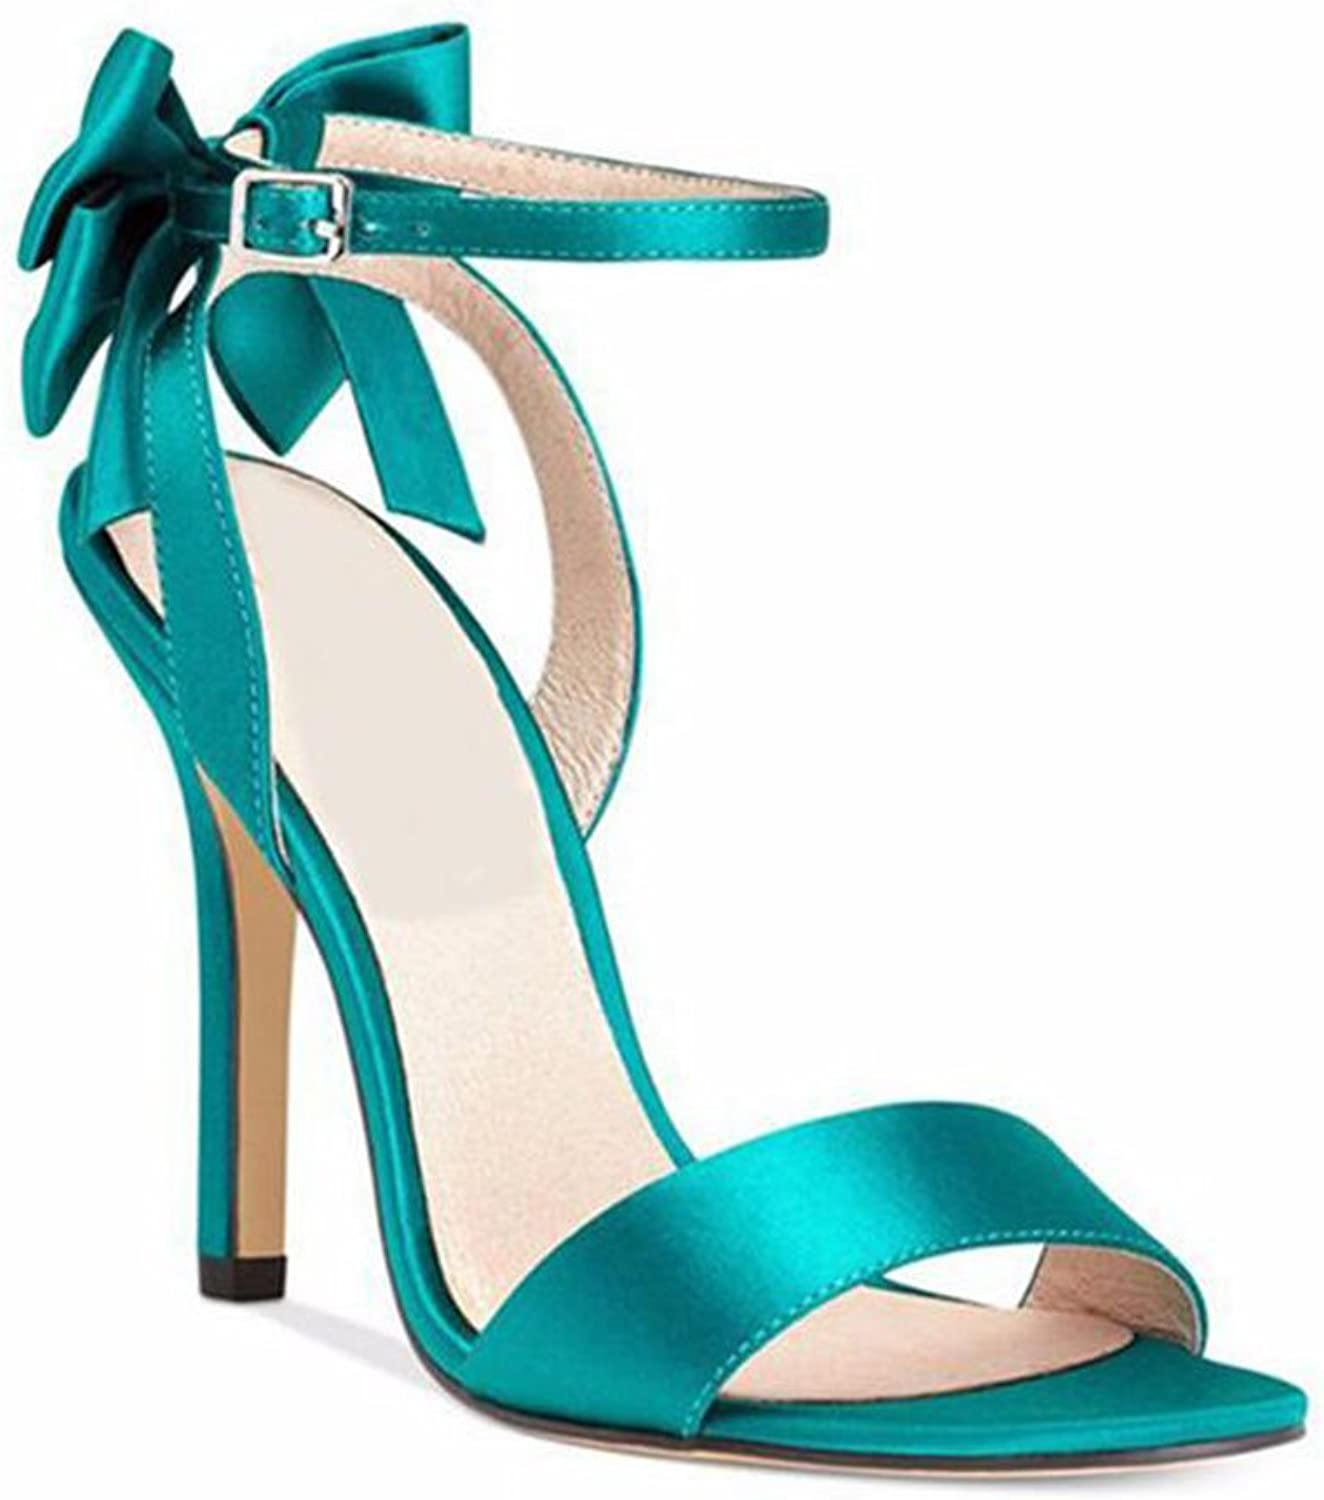 Women's shoes Solid color High Heels New Ladies Sandals Exposed with Open Toe Satin Fine with Bow